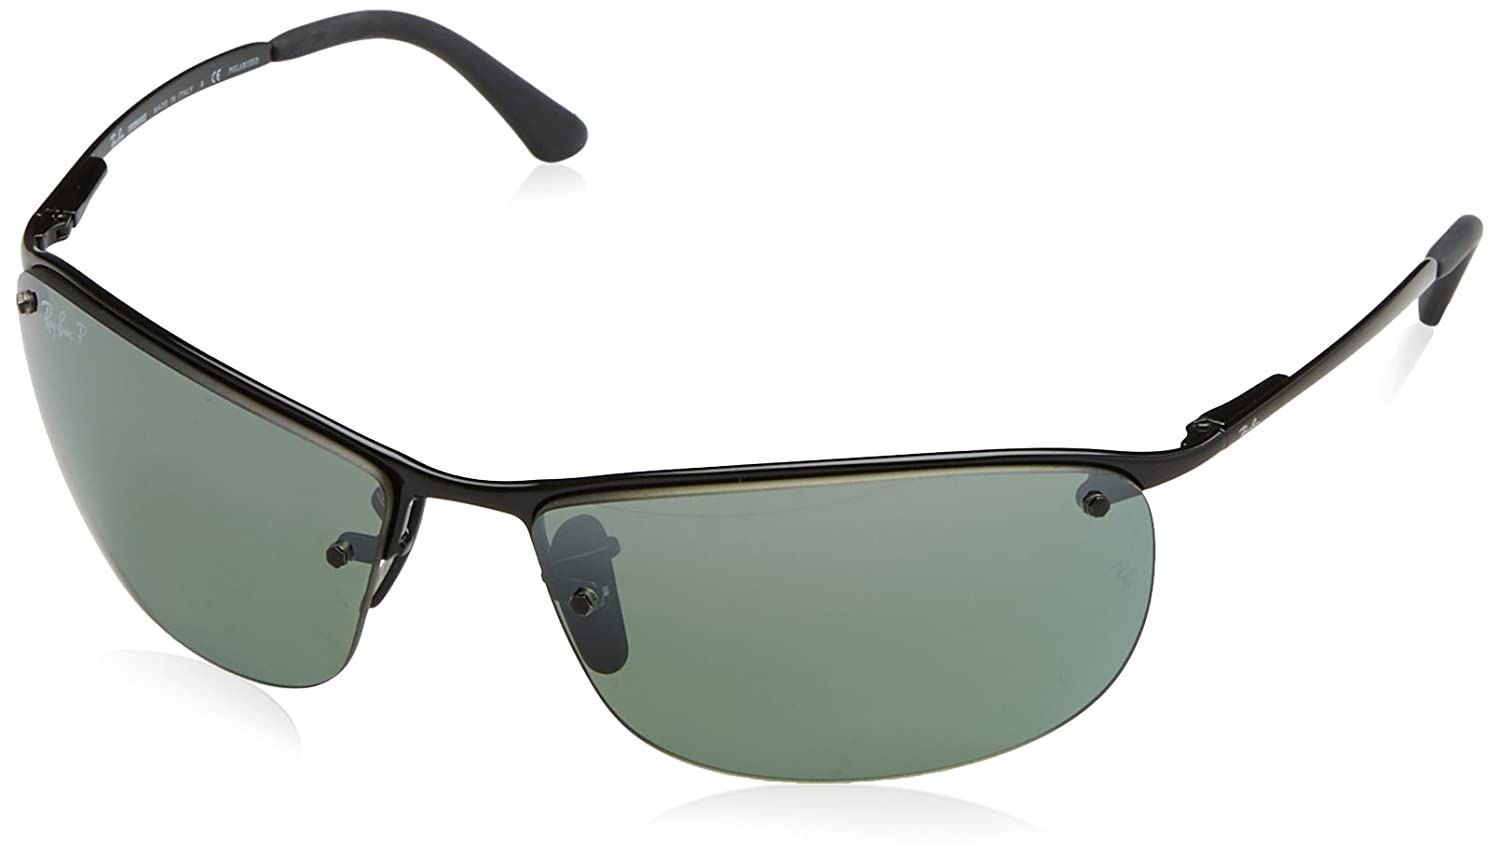 Ray-Ban RB3542 Chromance Lens Wrap Sunglasses Ray-Ban Sunglasses 0RB3542 MOD.3542SUN_002/5L-63